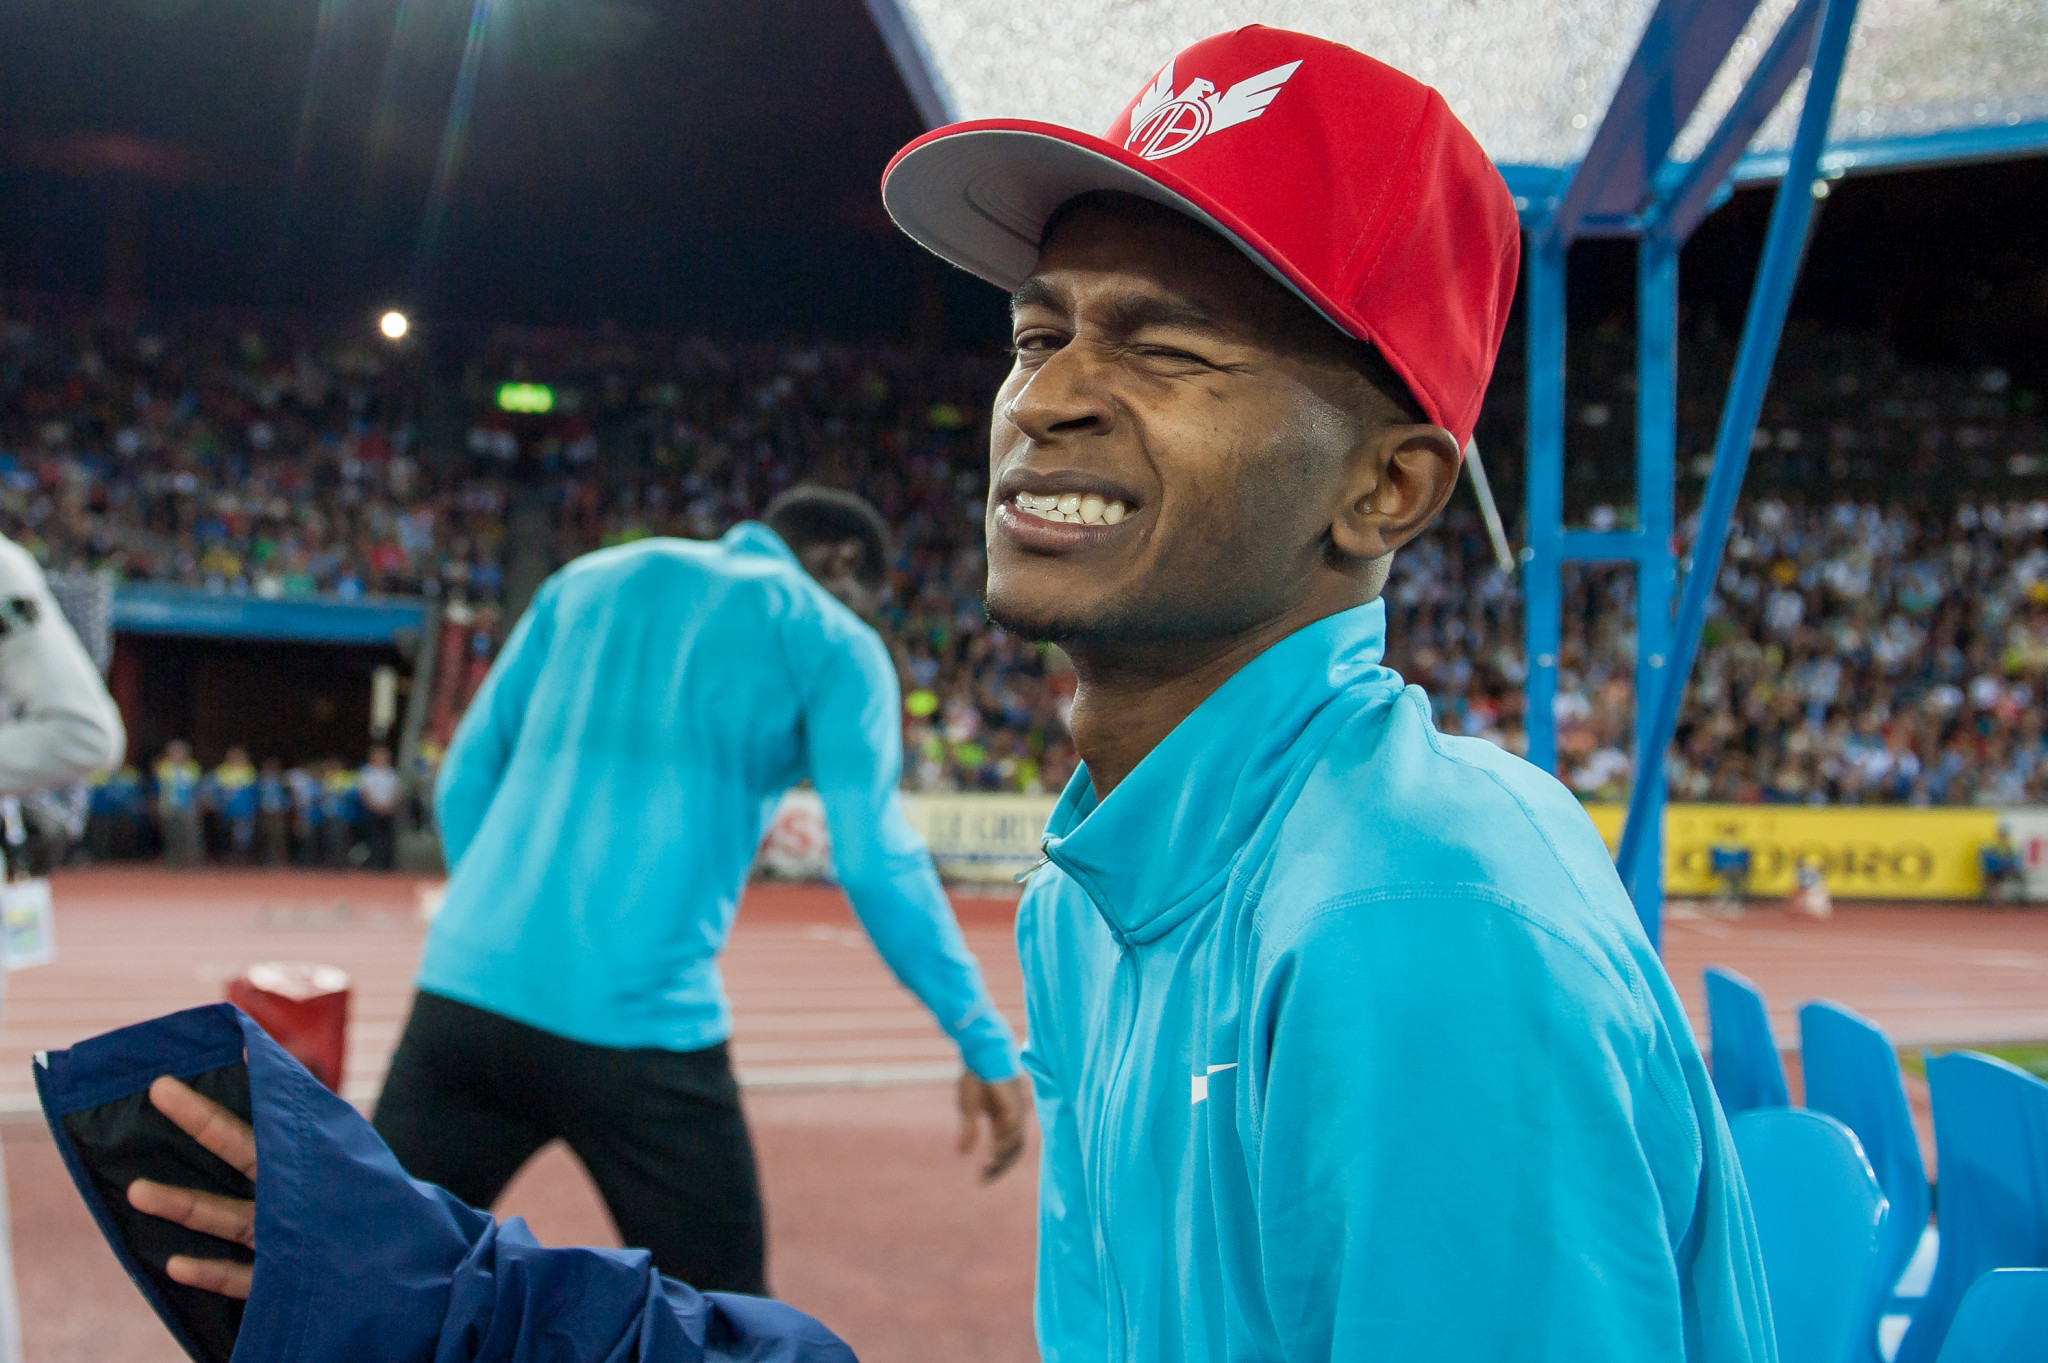 Mutaz Essa Barshim says he has the world record on his mind ©Getty Images